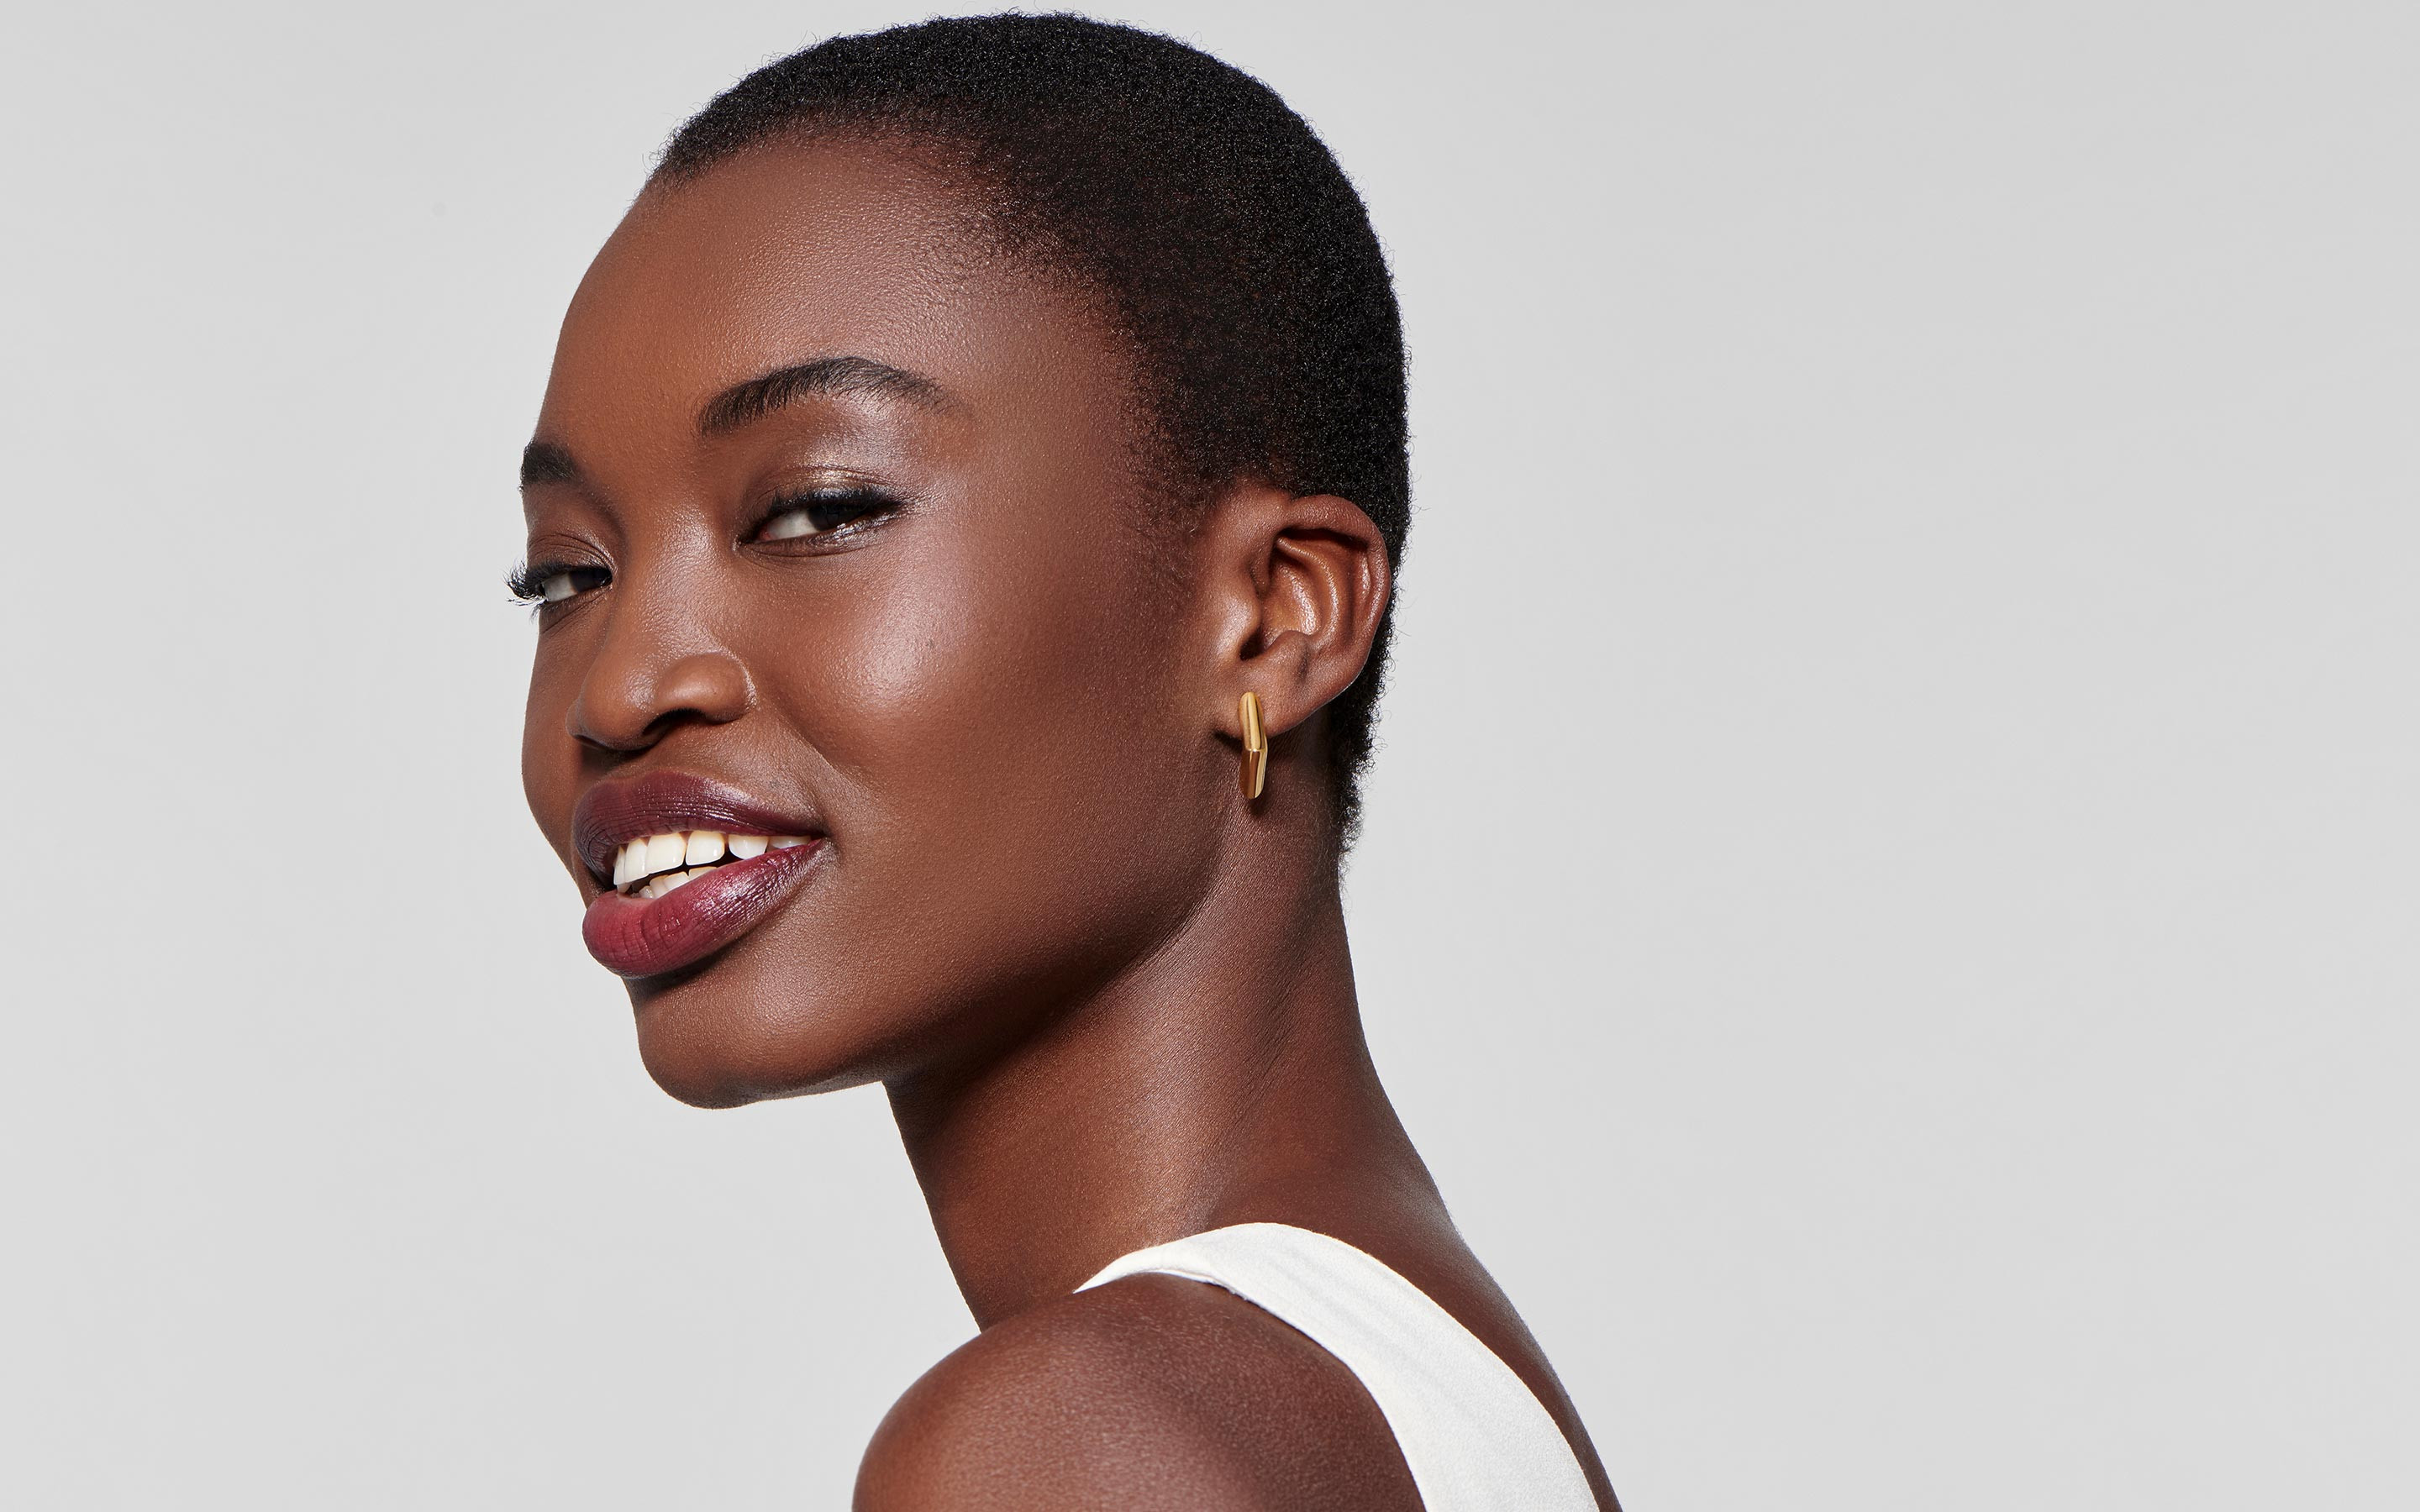 alluring black female model with glowing contemporary 22 karat gold earrings in valley shape